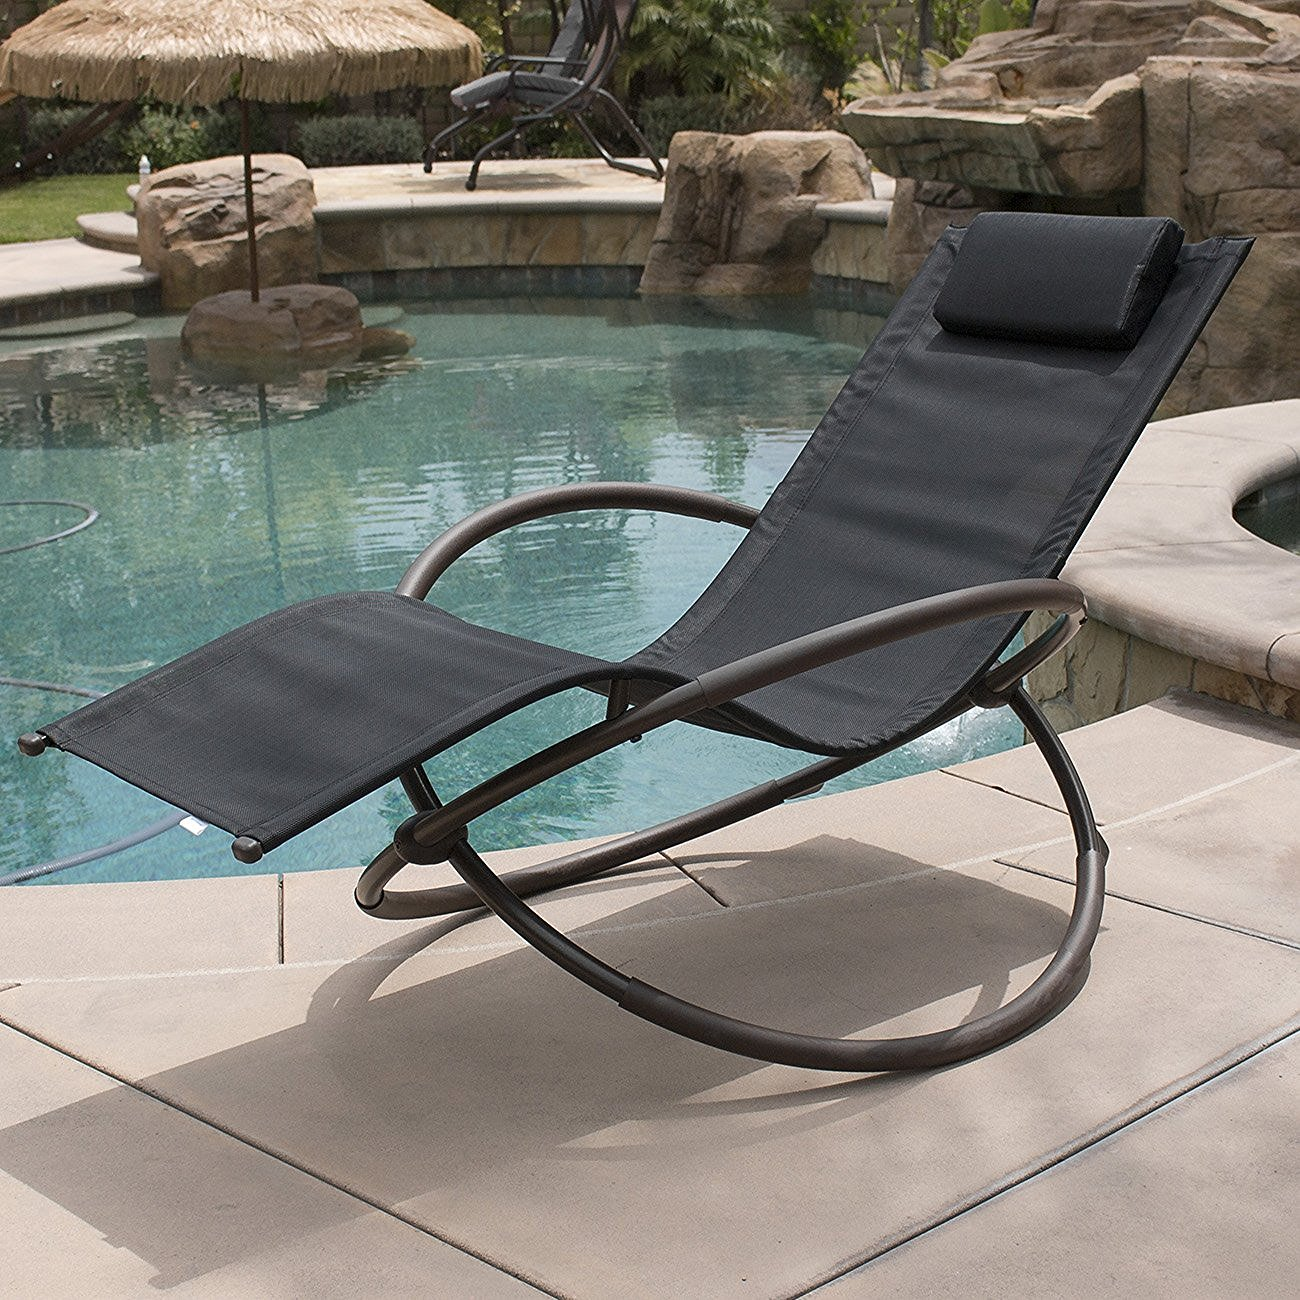 belleze-zero-gravity-orbital-lounger-rocking-chair-outdoor-patio-yard-furniture